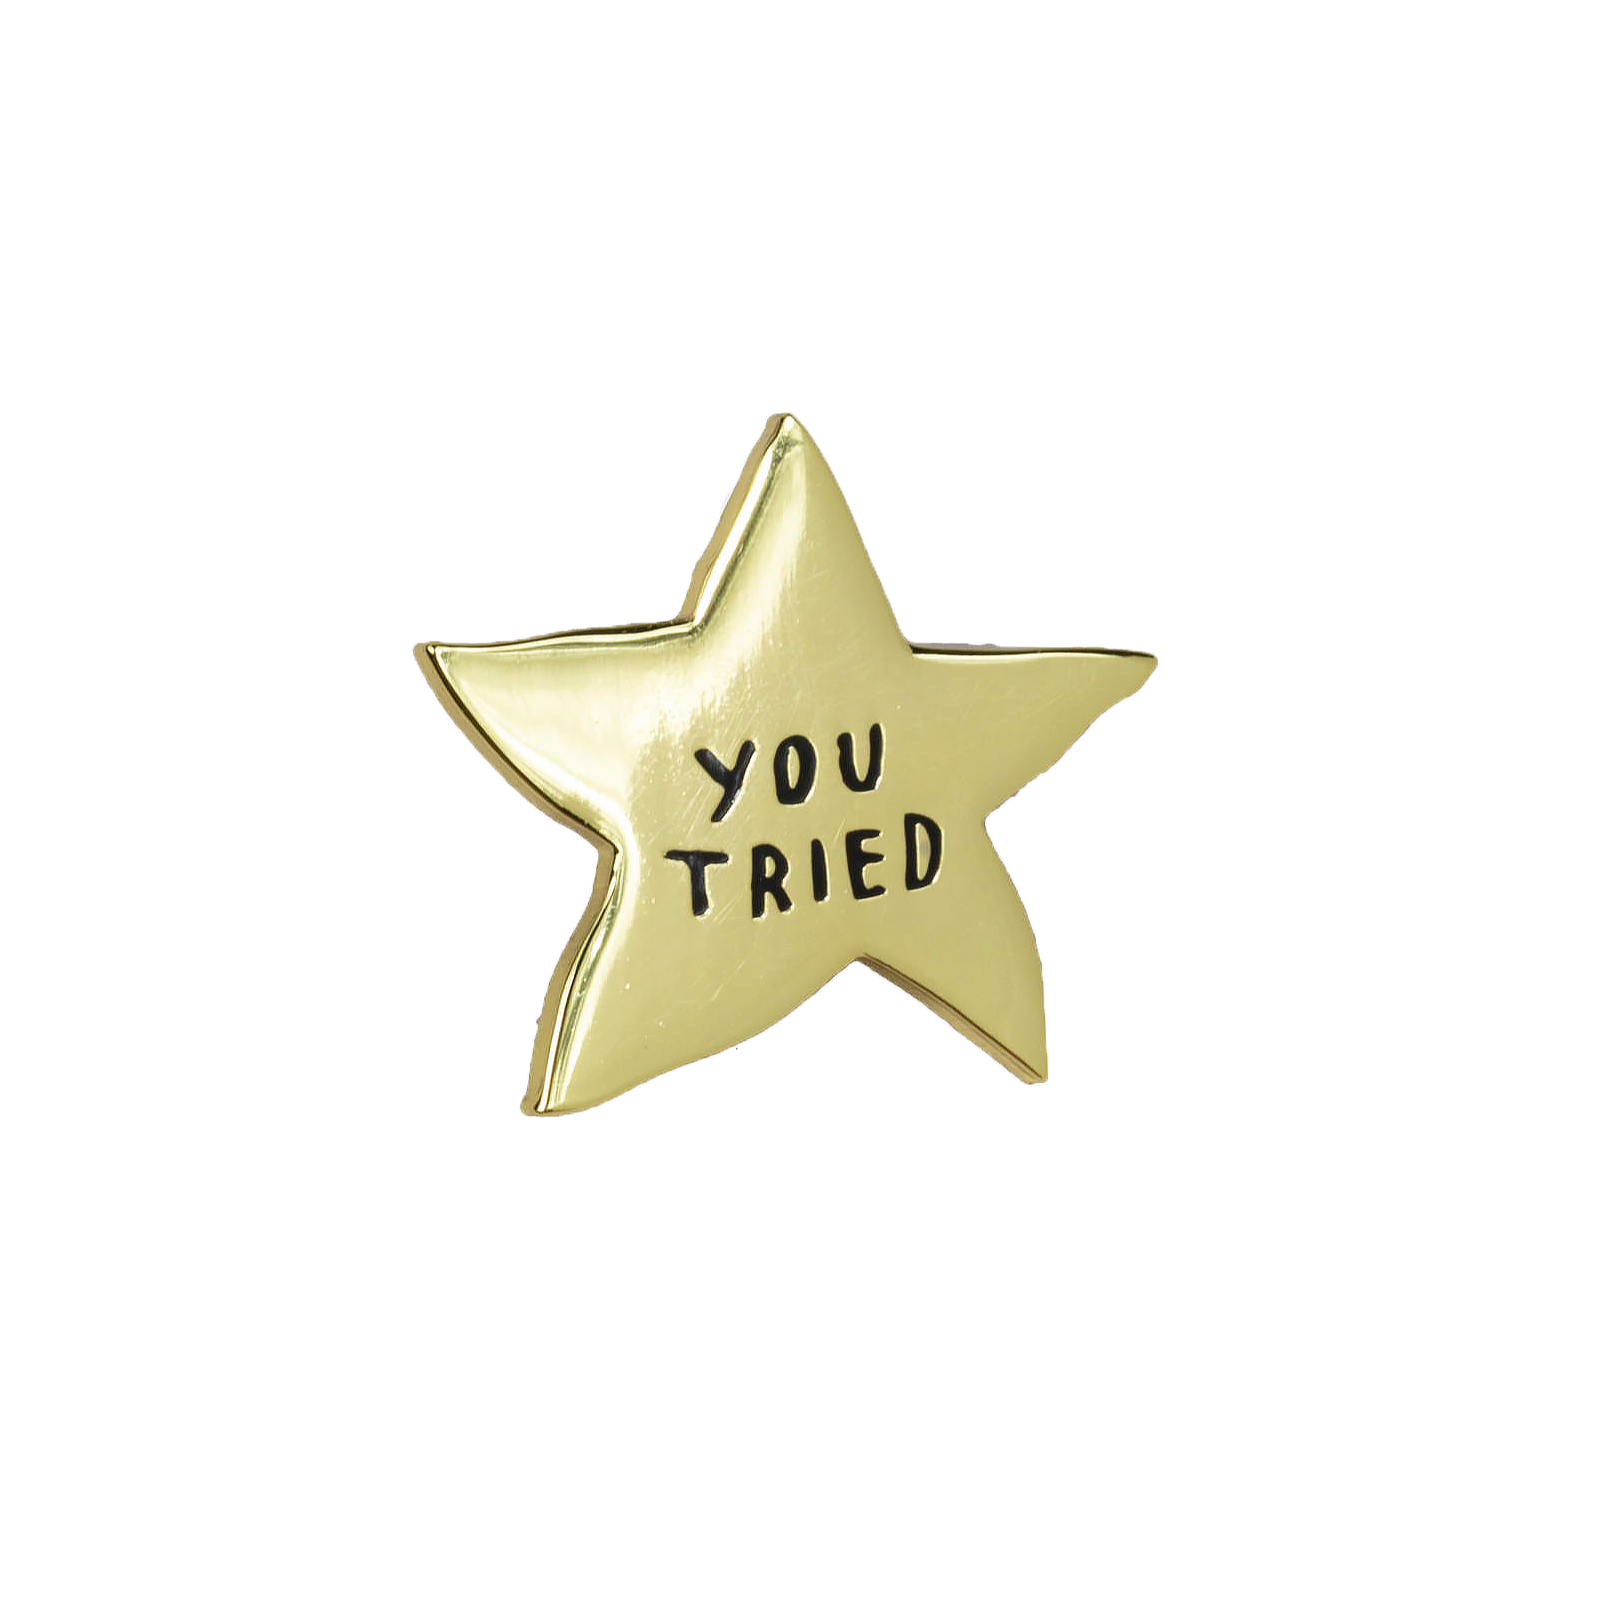 Buy Olympia Adam J. Kurtz You Tried Gold Star - Enamel Pin